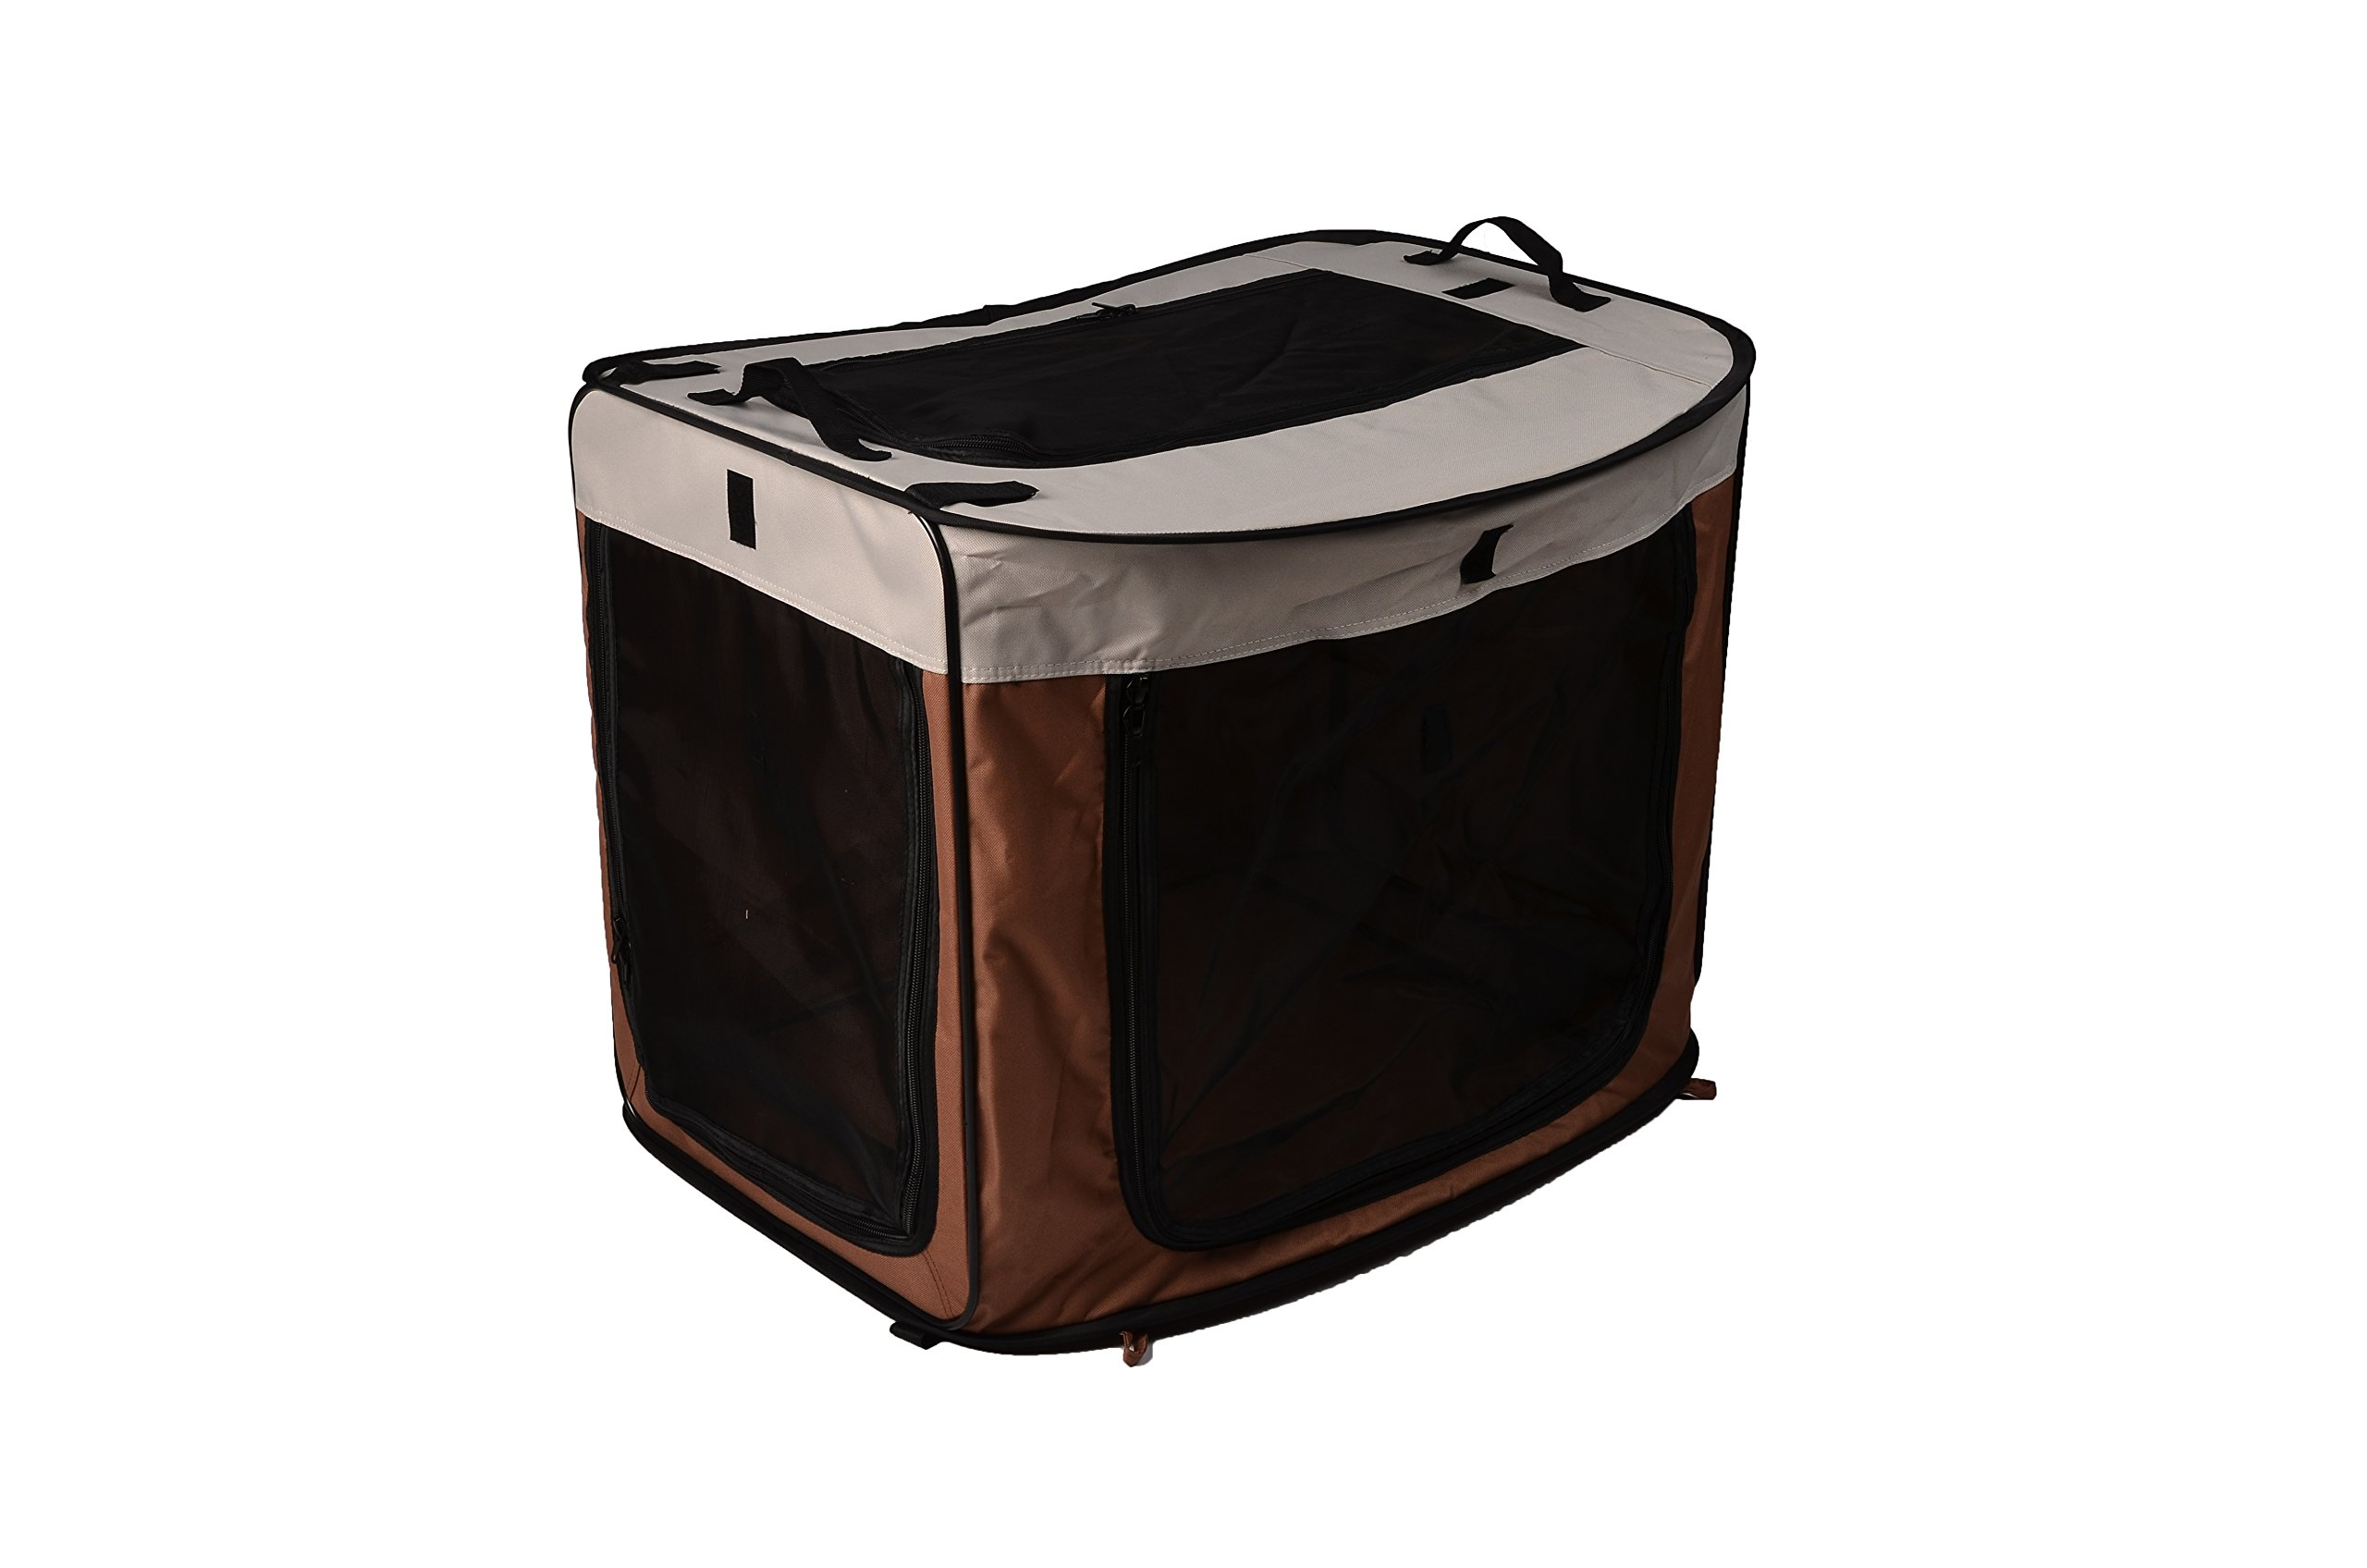 HappyCare Textiles Large Portable/Foldable Kennel, 31.8'' x 22.5'' x 24.5''/25.6'' x 20.86'' x 2.35'', Brown/Coffee/Ivory